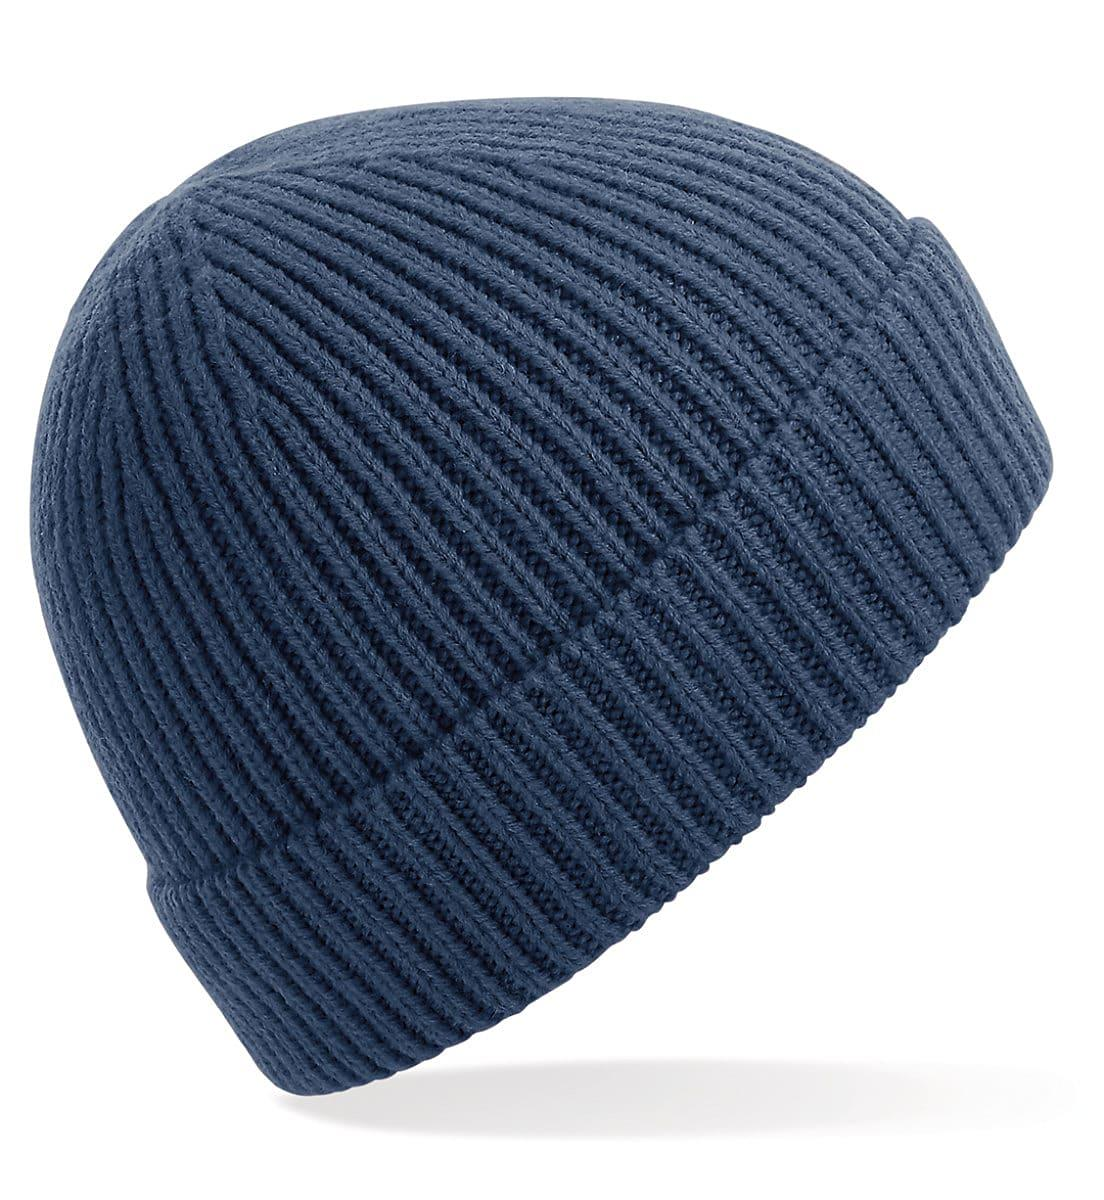 Beechfield Engineered Knit Ribbed Beanie Hat in Steel Blue (Product Code: B380)